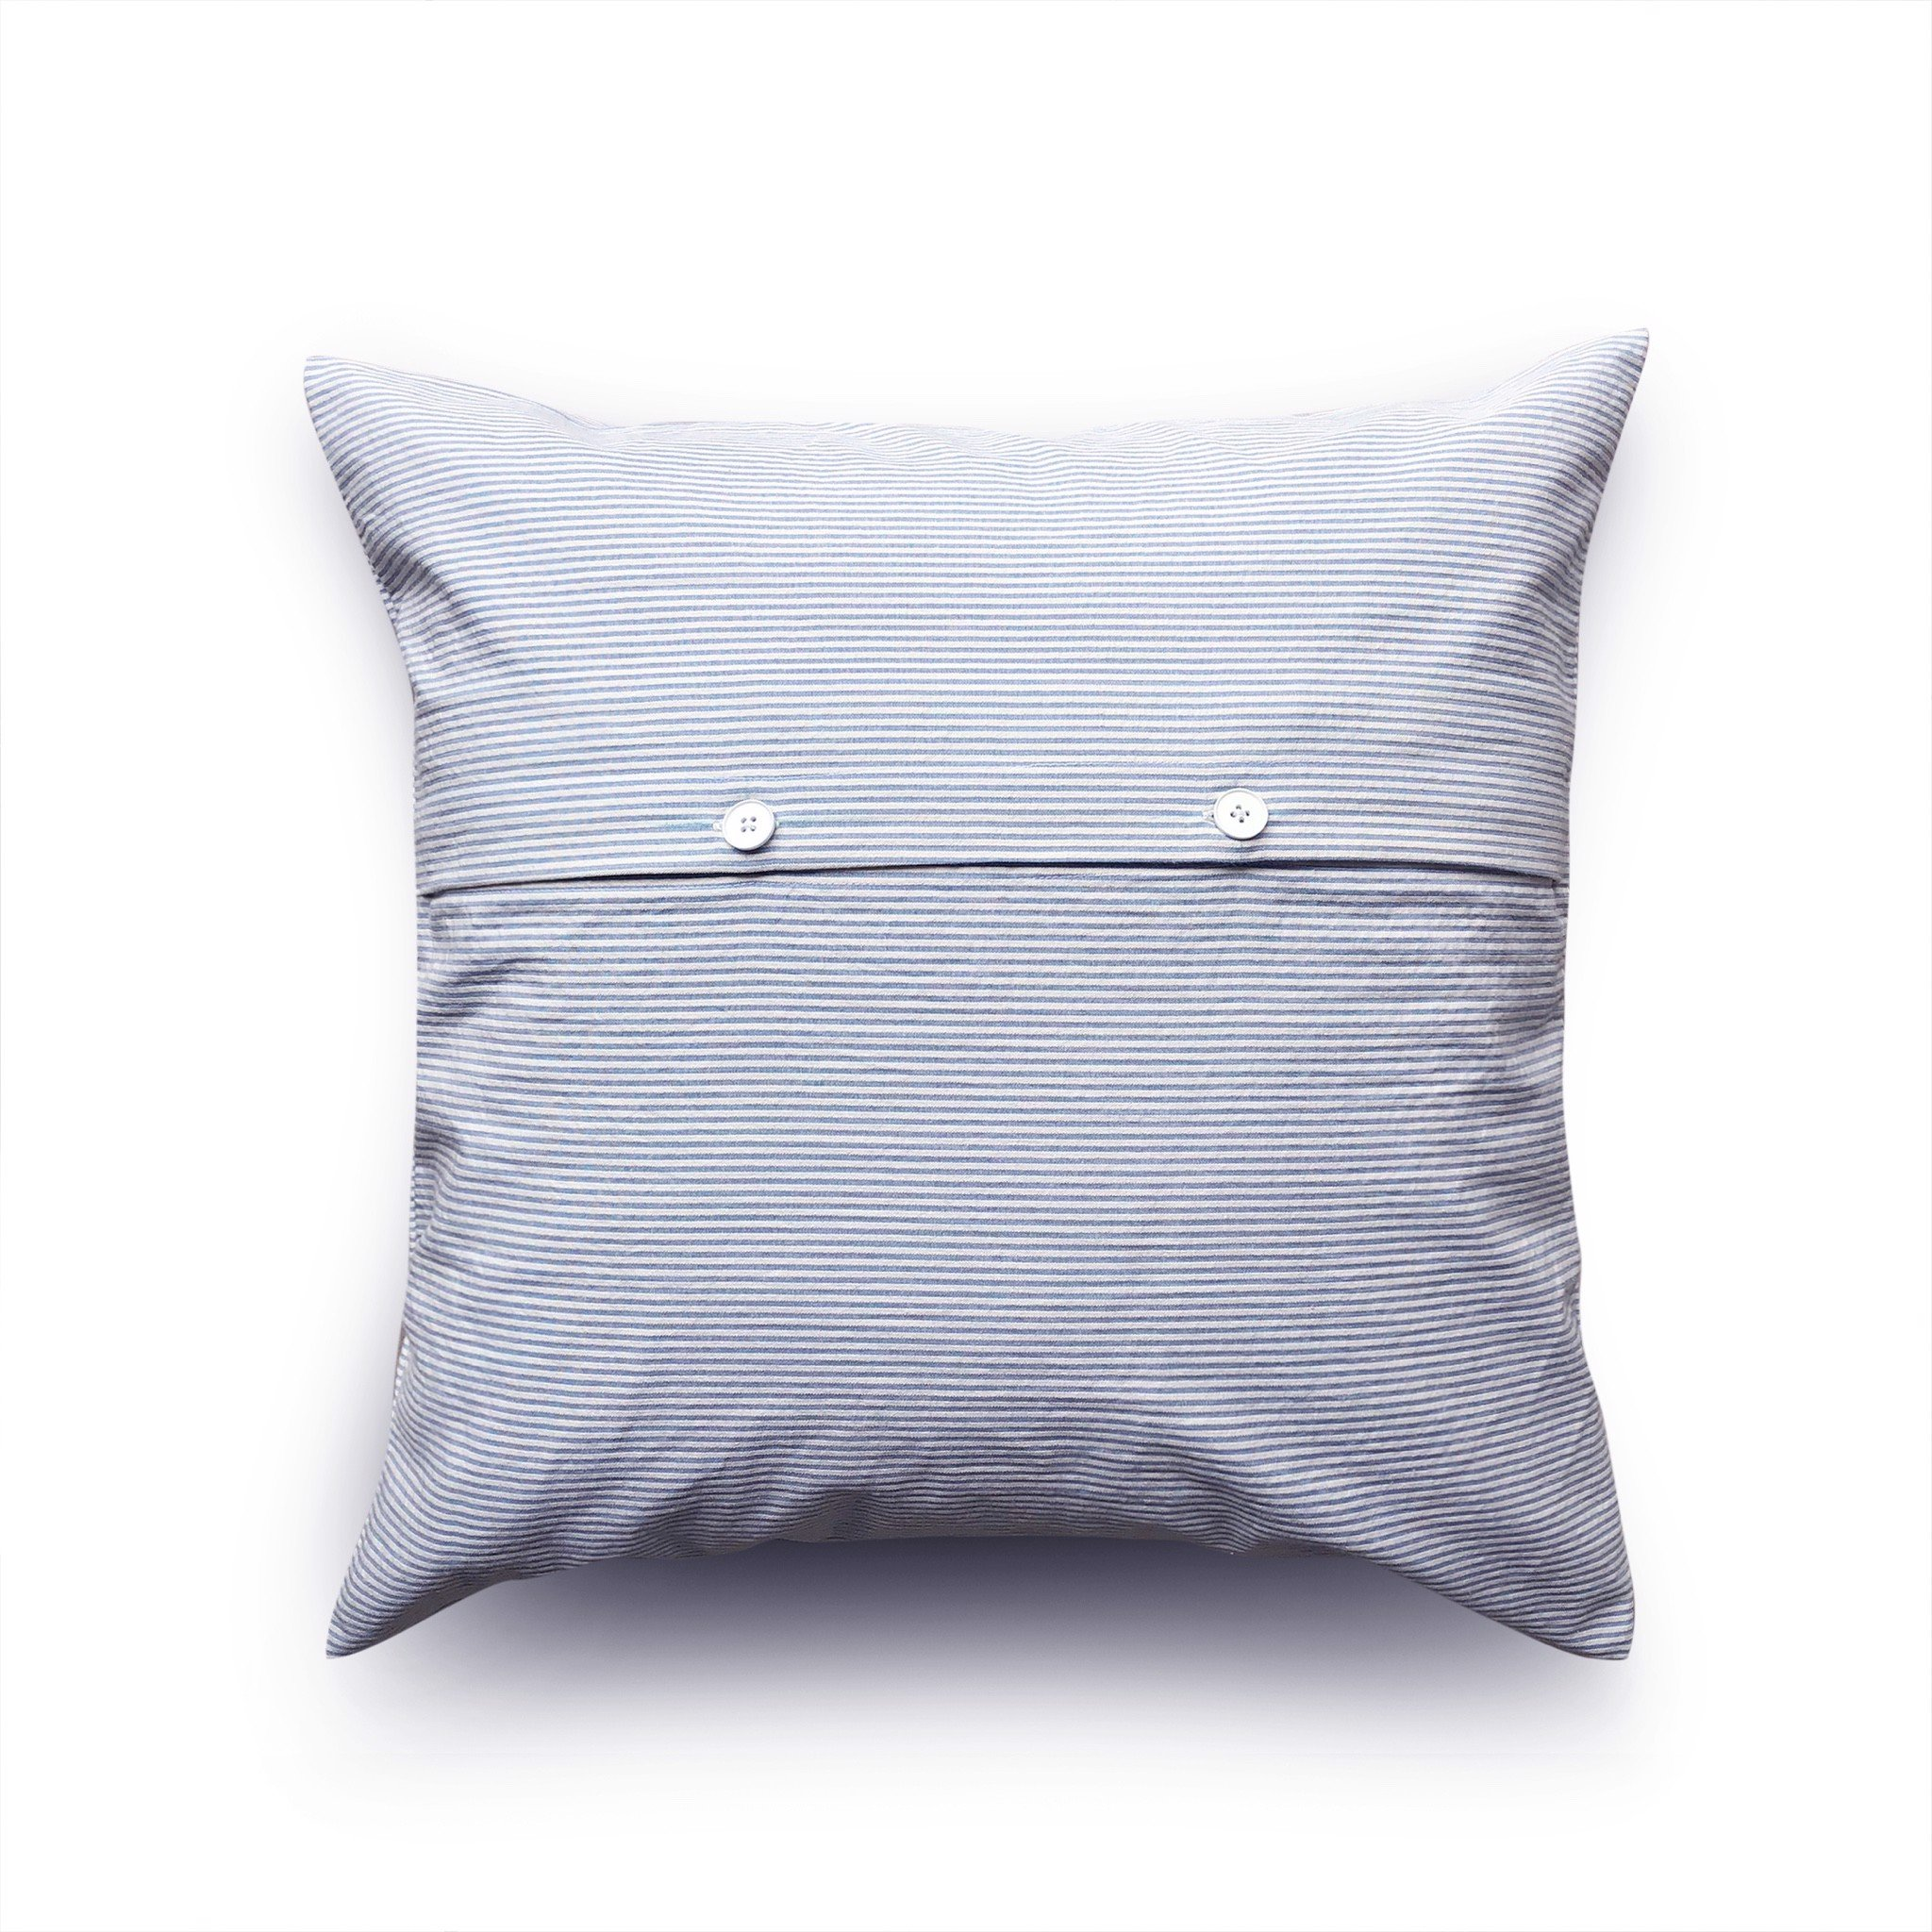 Cushion cover 69 Blue white stripes